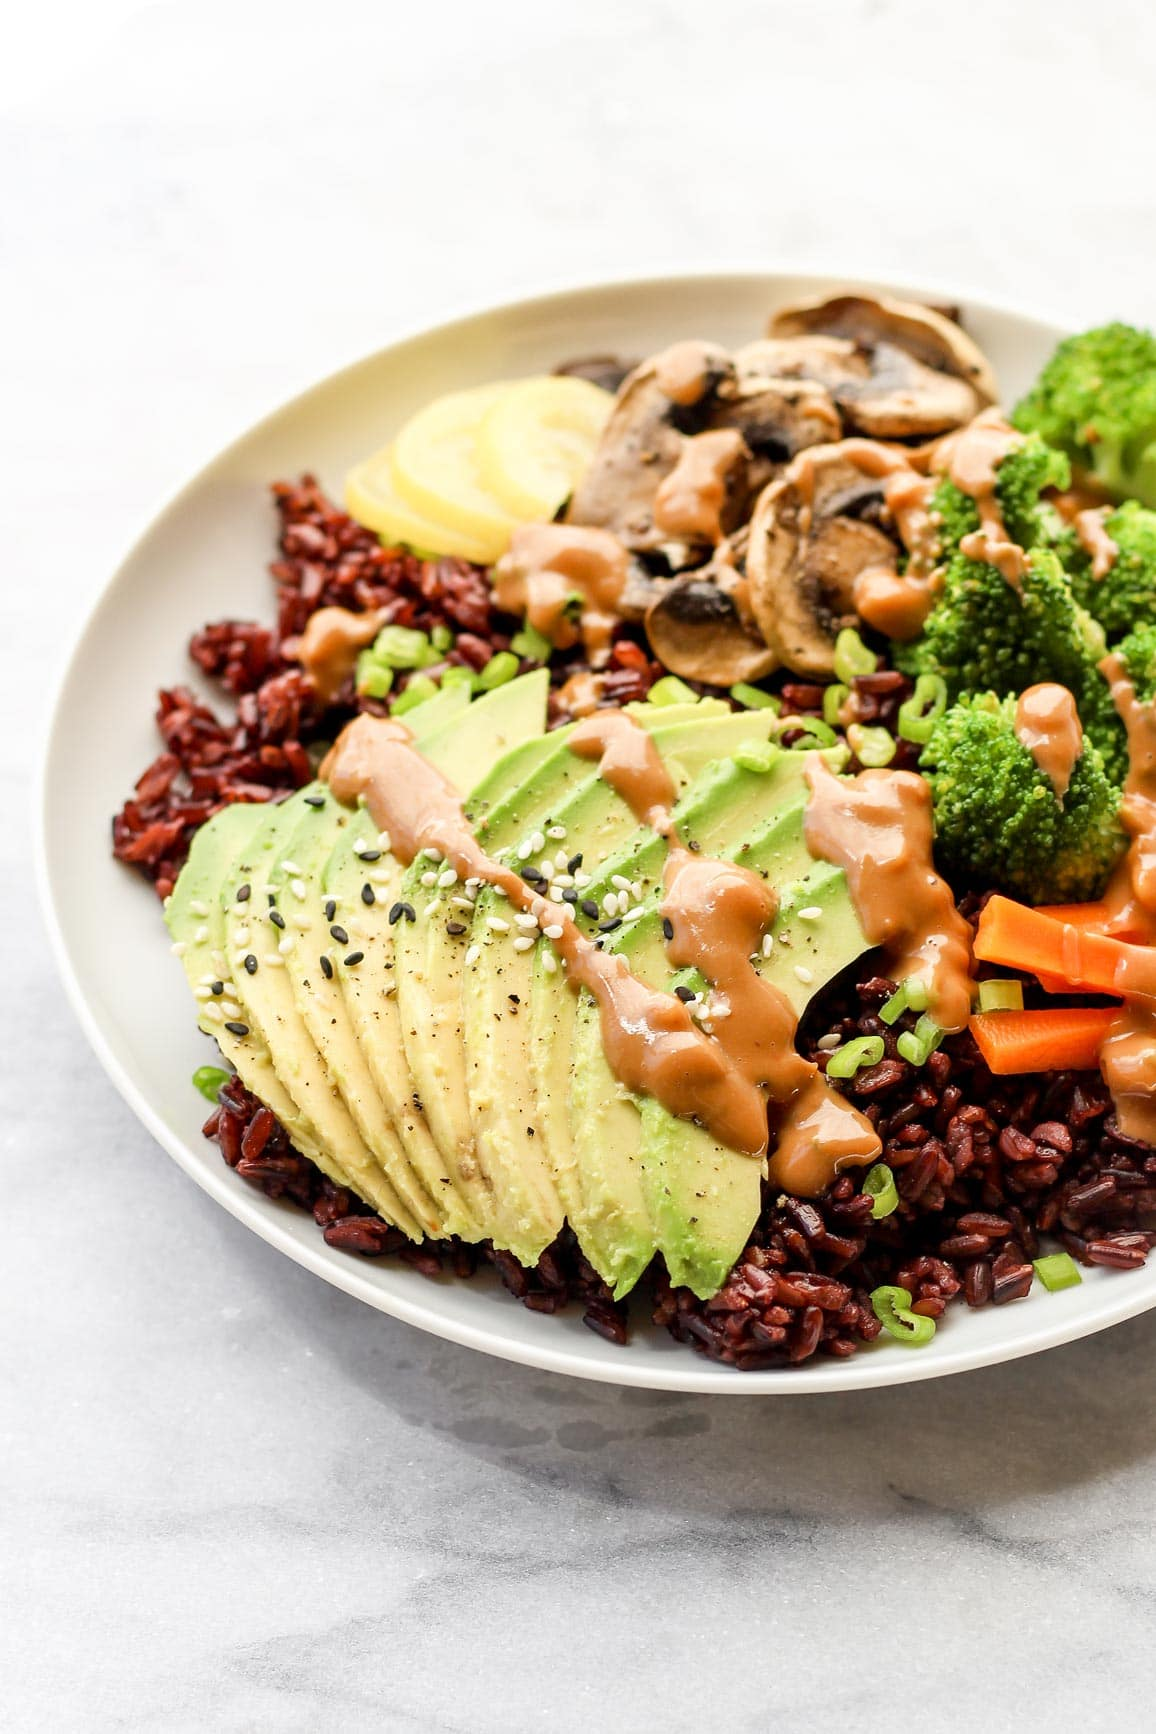 Glowing Black Rice Bownl with Almond Butter Dressing